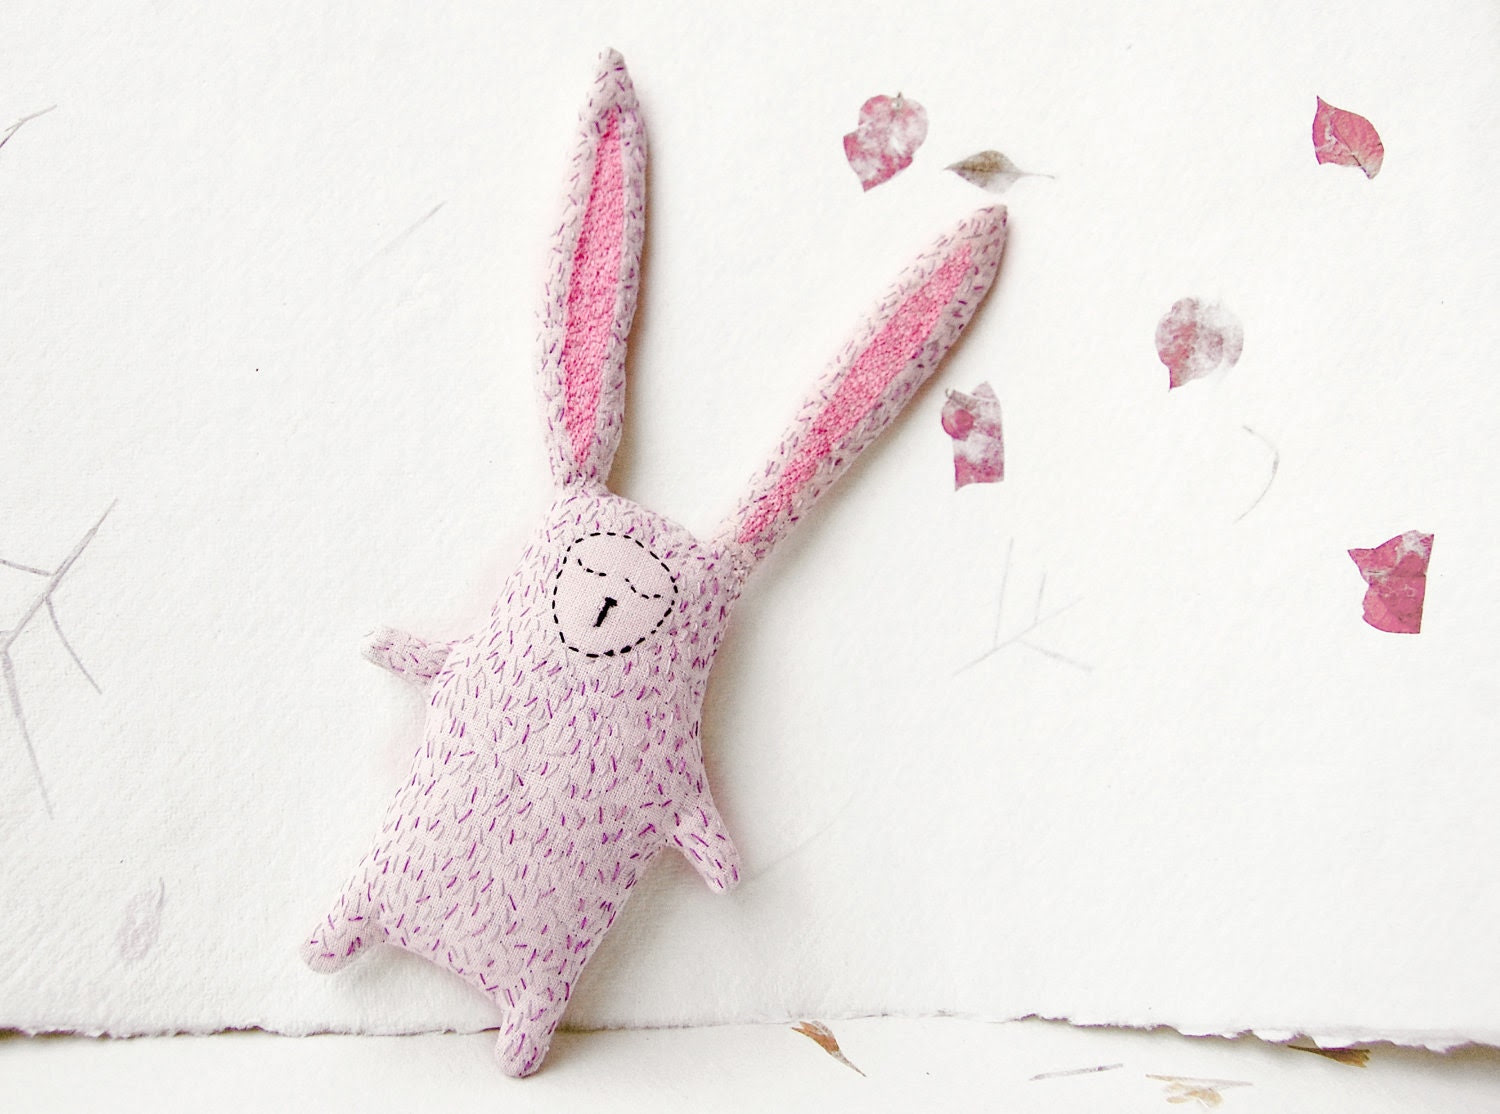 Easter Bunny Soft Plushie Stuffed Toy - Sleepy Bunny Eco Friendly Fabric Doll - Romantic Rabbit Softie Totem